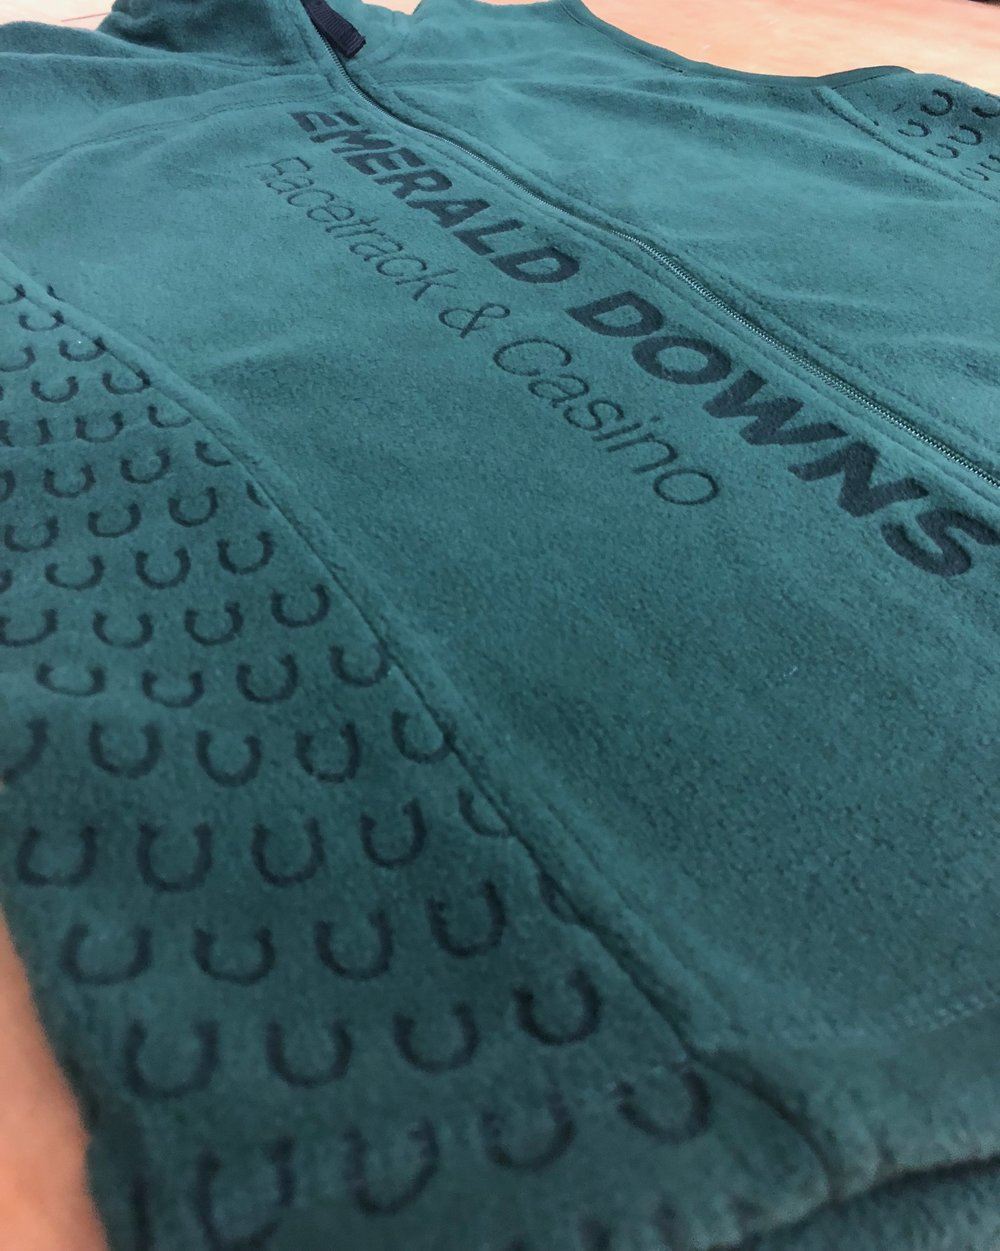 logounltd_laser_etching_embroidery_screen_printing_corporate_apparel_uniform_custom_tshirts_uniforms_dye_sublimation_kirkland_bellevue_seattle_redmond_branded_merchandise_promotional_products (27).jpg